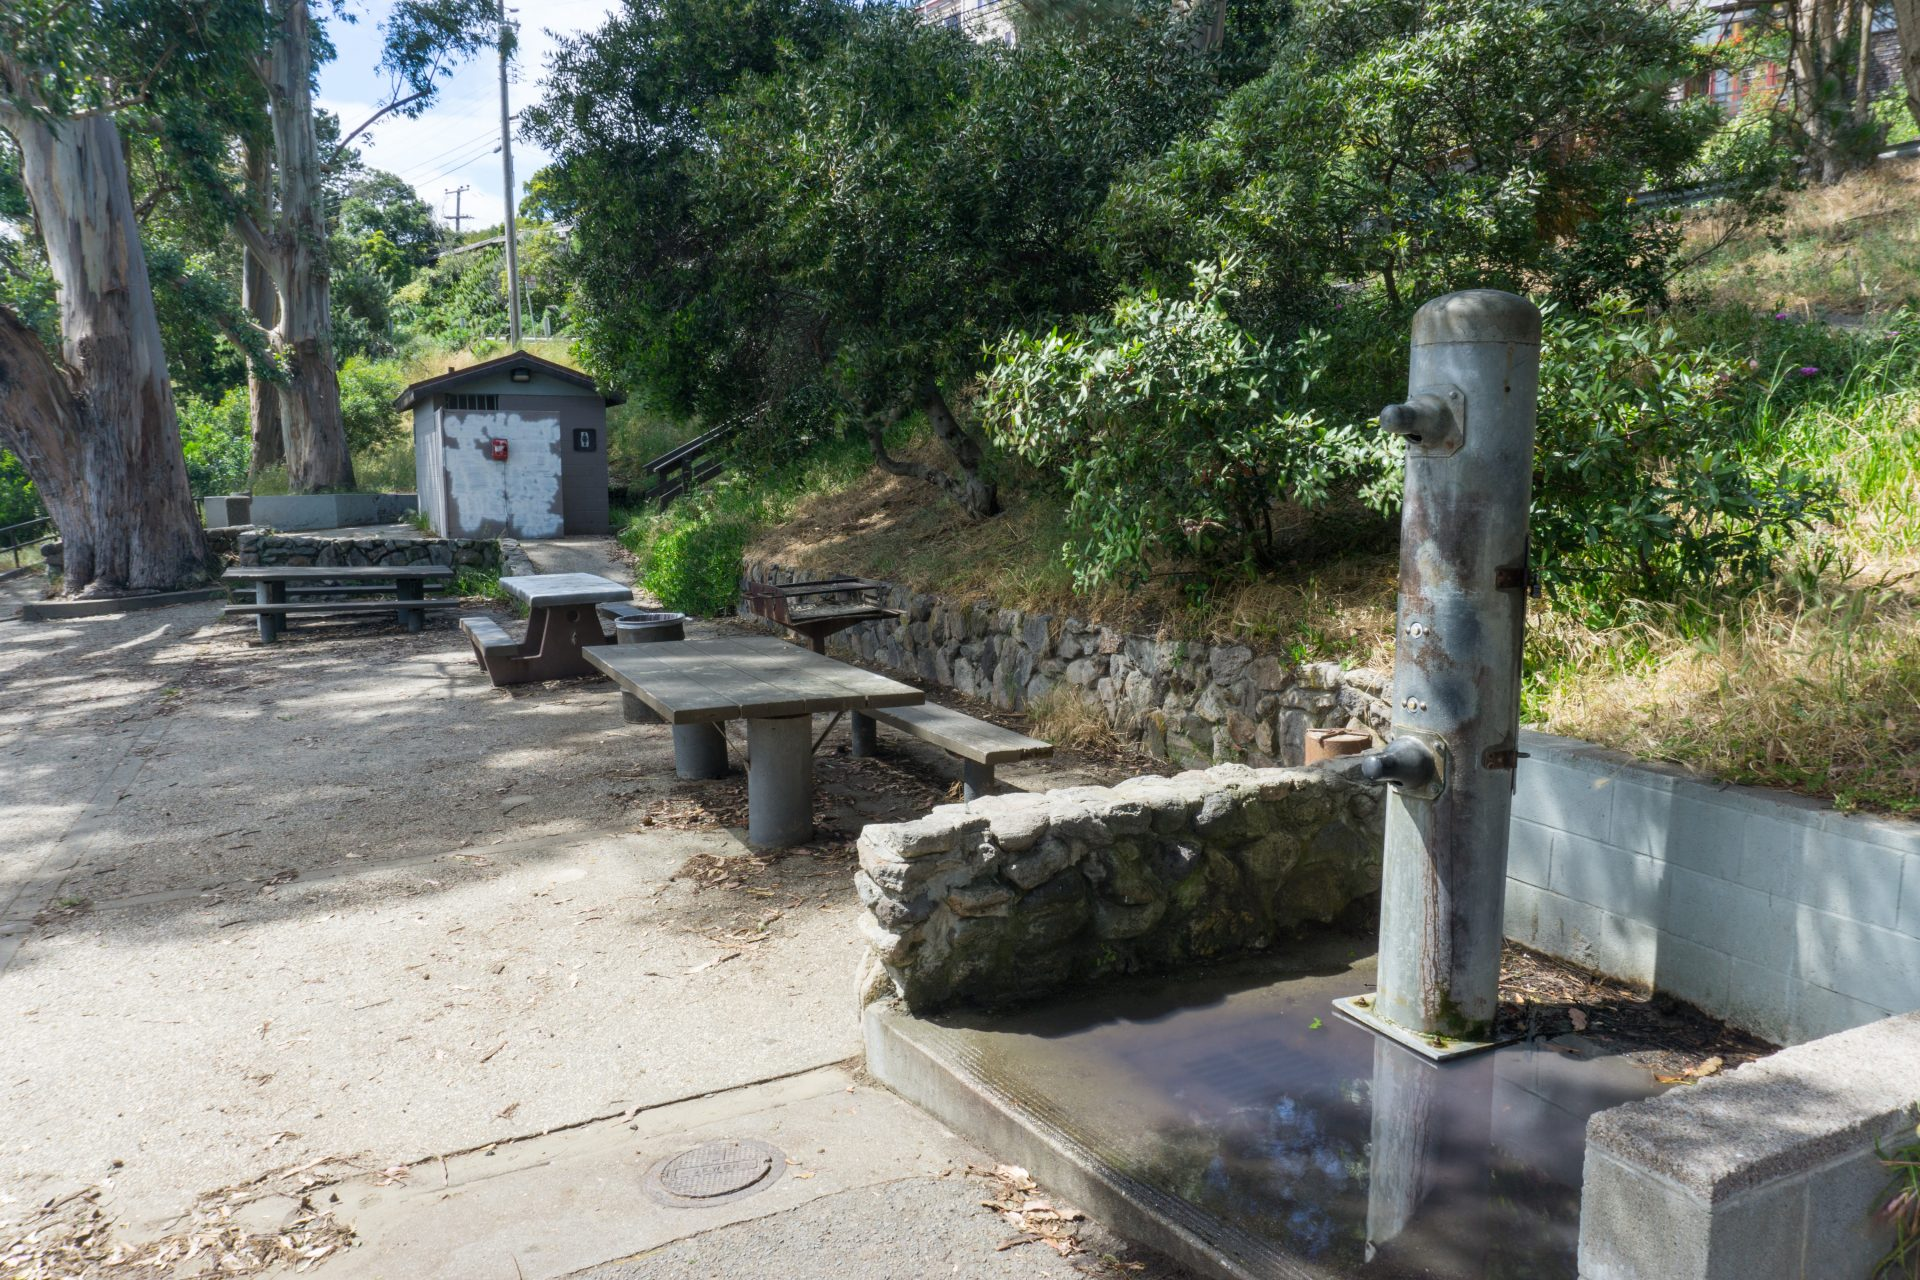 outdoor shower and faucet next to picnic tables